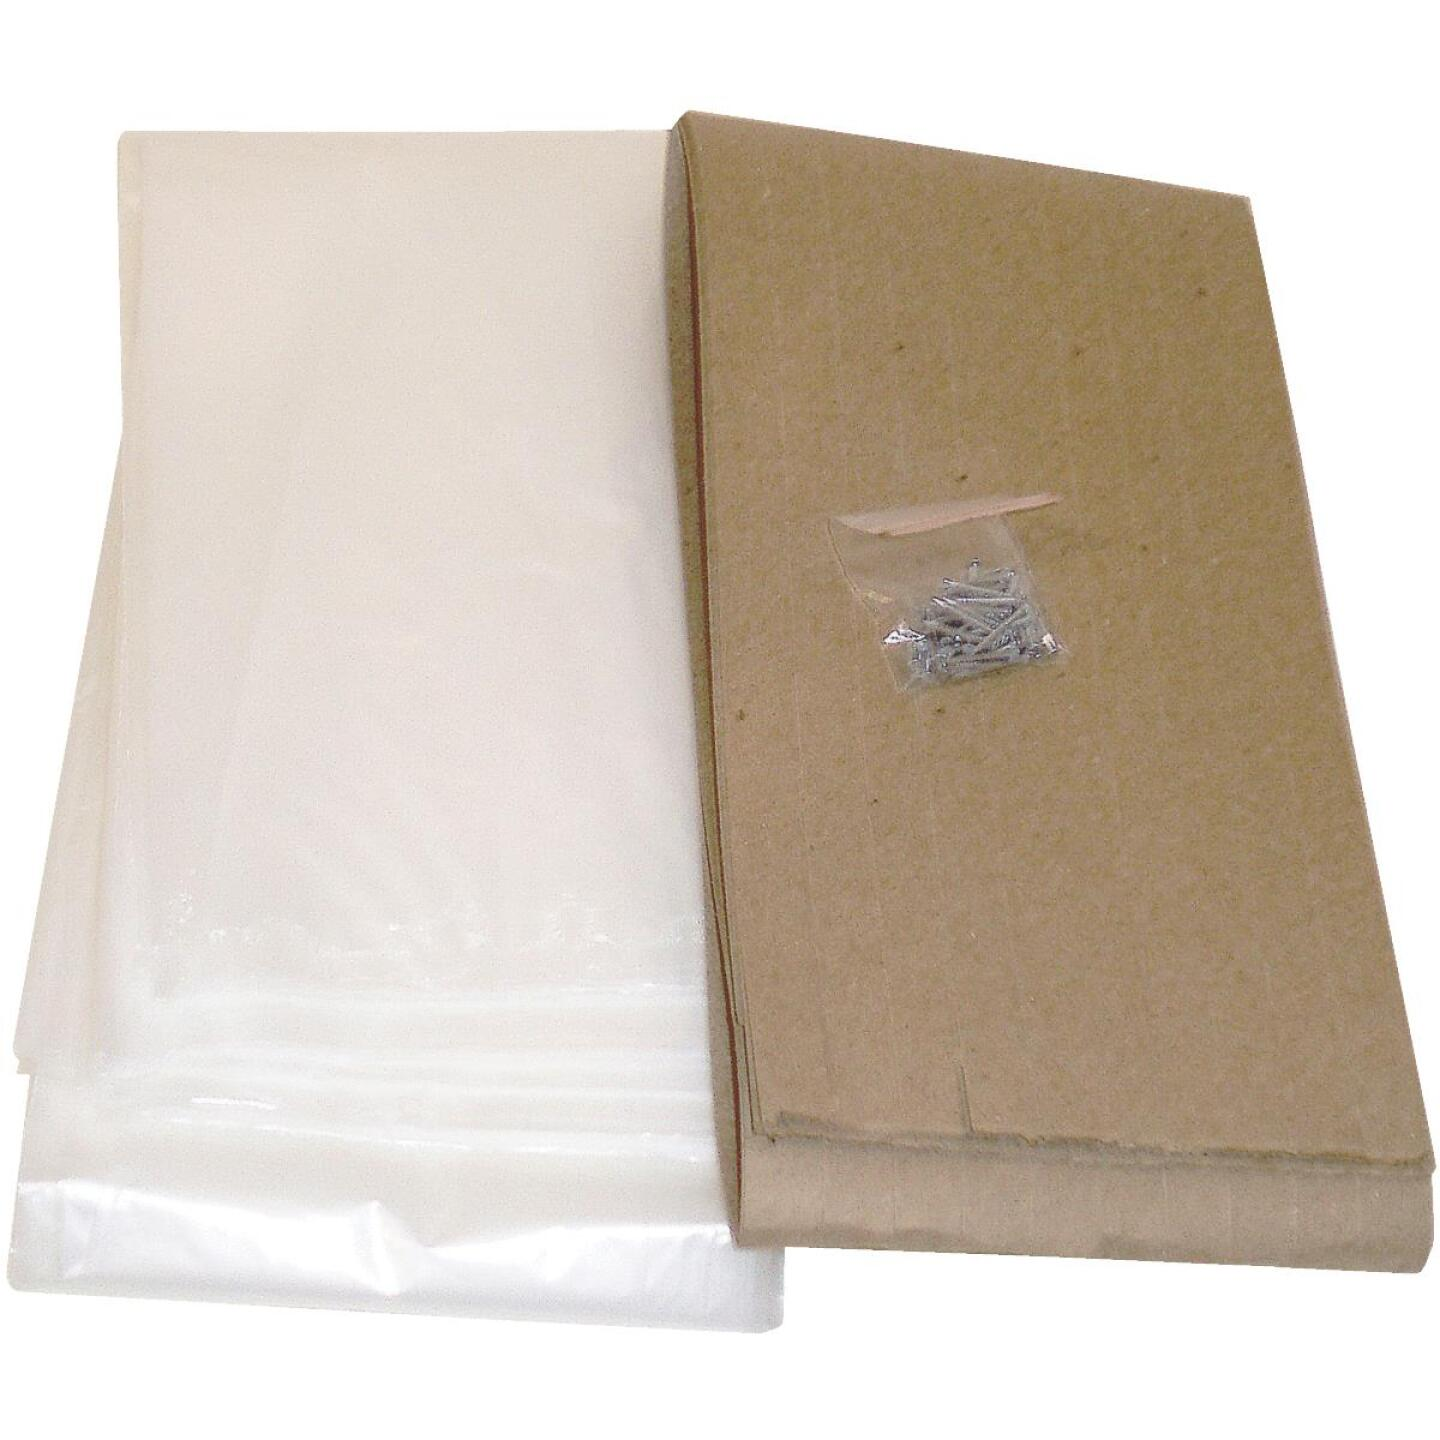 Do it Outdoor 3 Ft. x 6 Ft. x 1. 25 mil Thick Window Insulation Kit, (4-Pack) Image 1